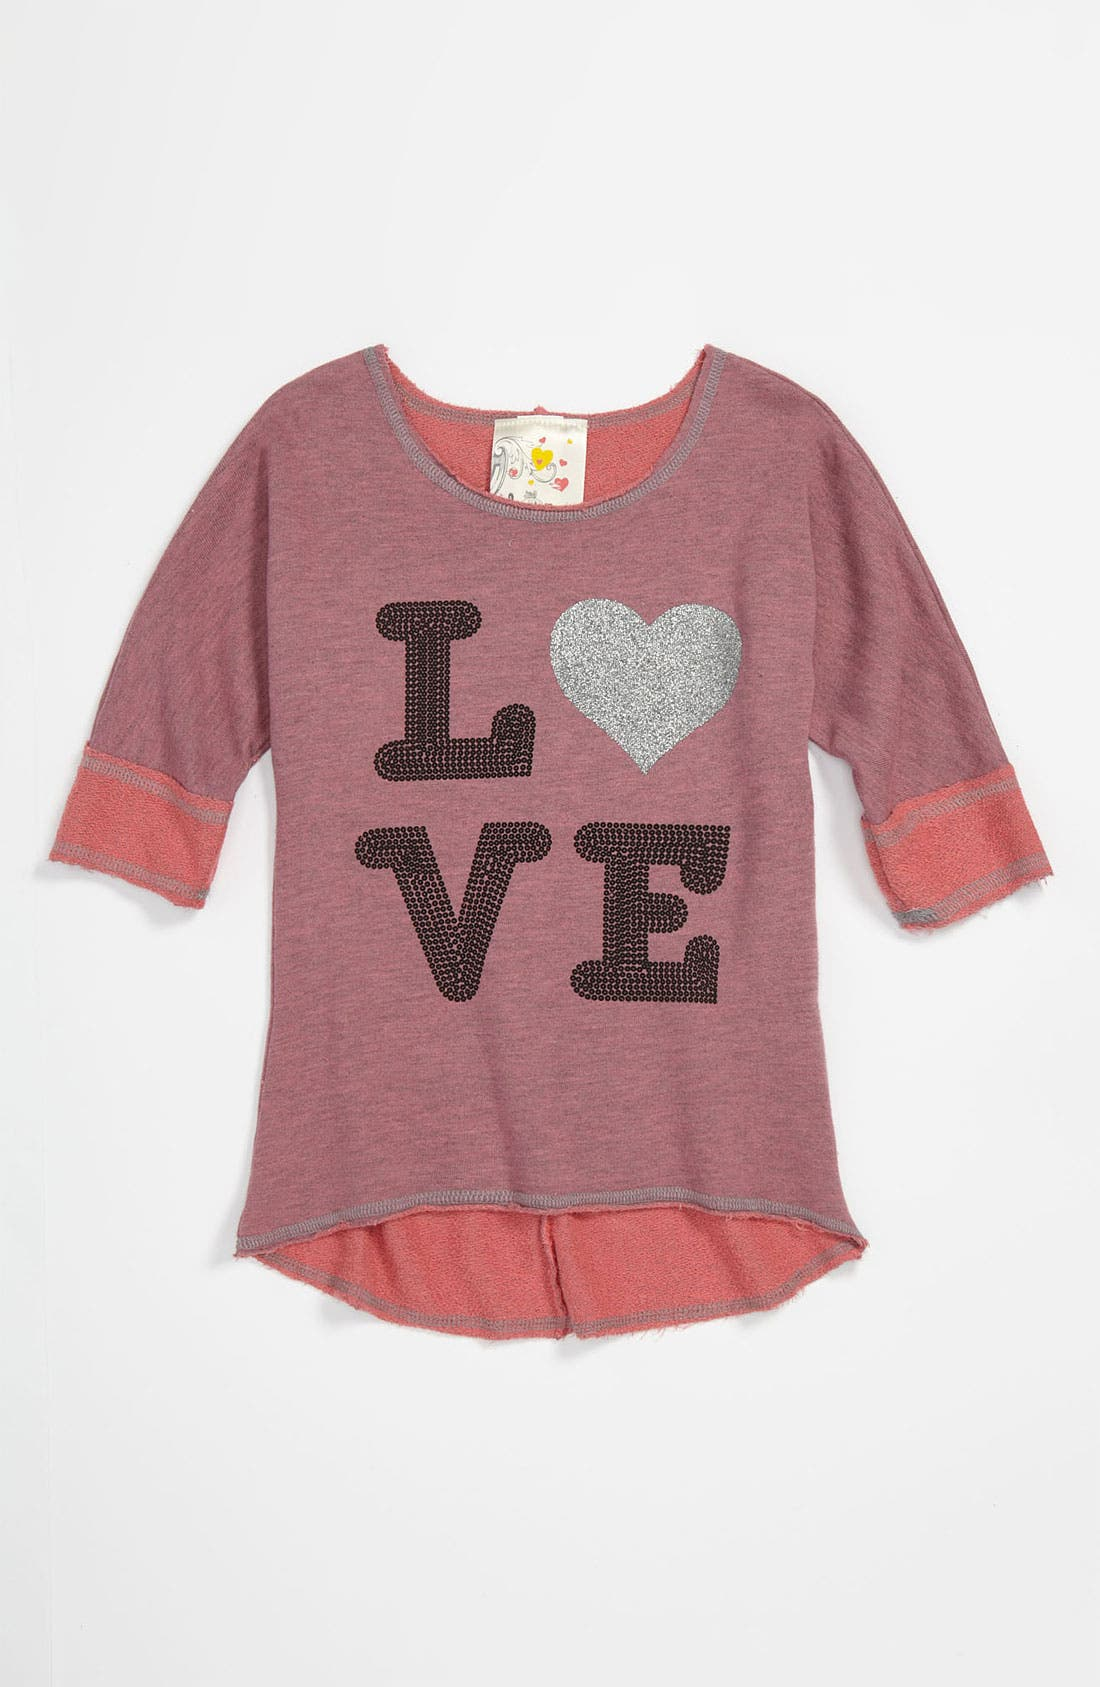 Alternate Image 1 Selected - Jenna & Jessie 'Love' Tunic (Little Girls)